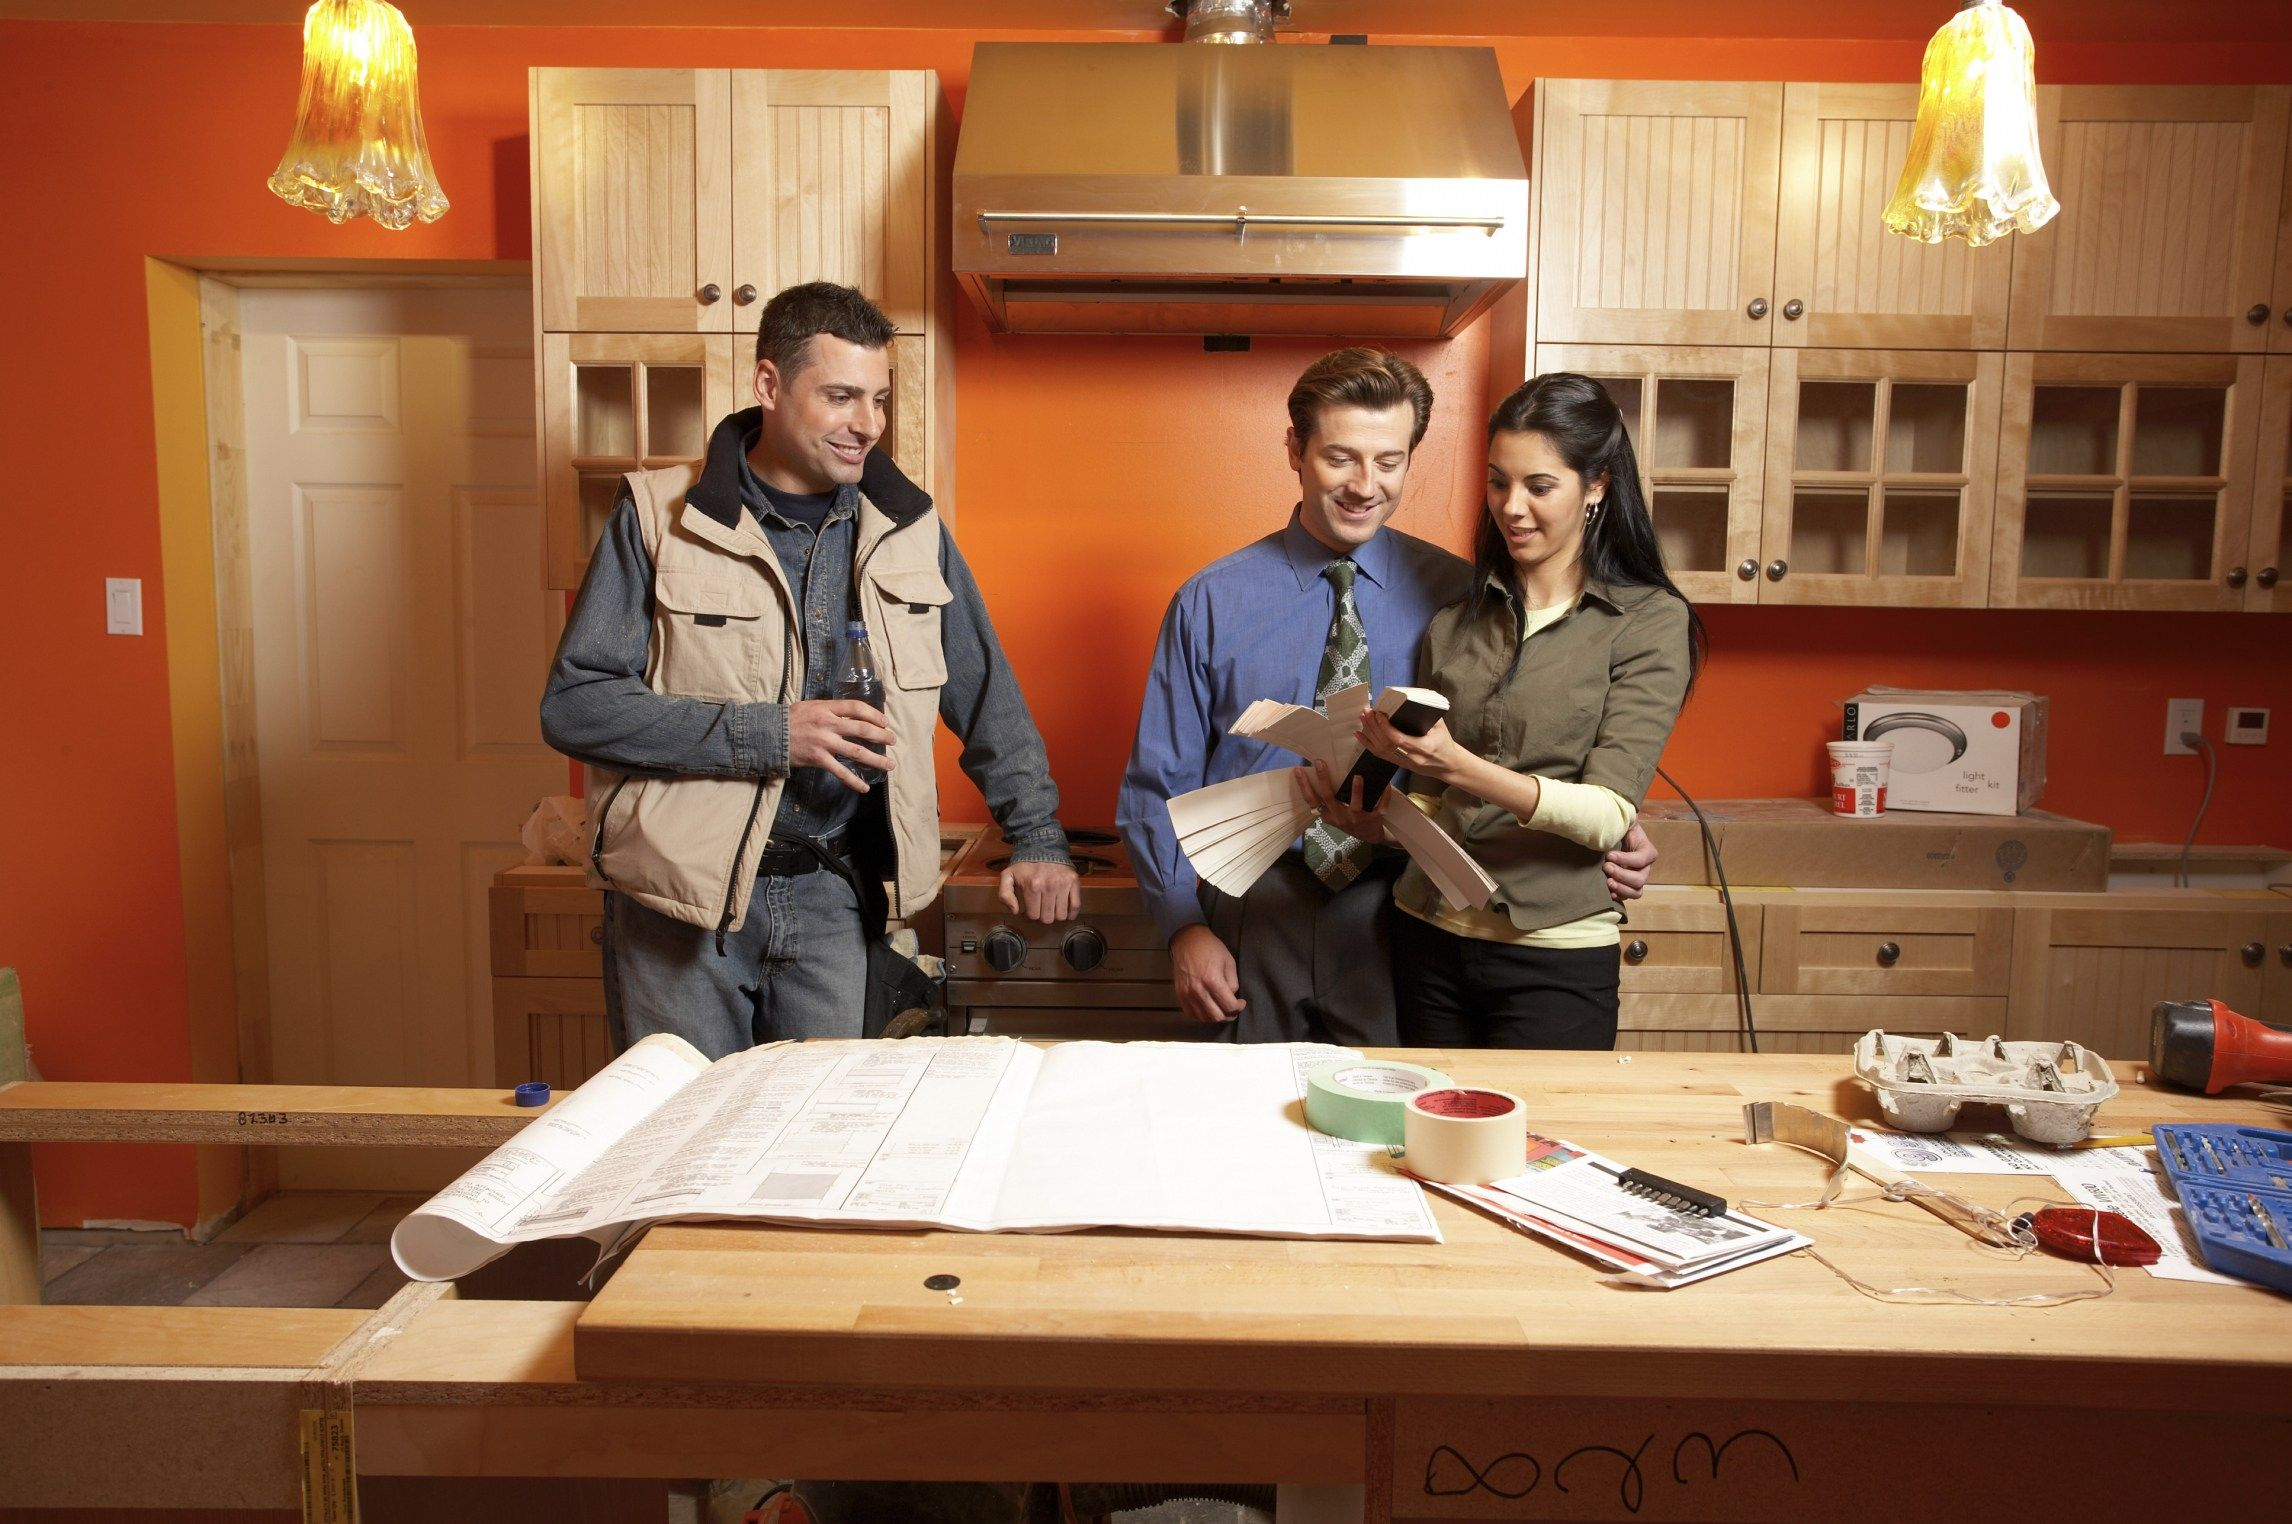 House Remodeling Contractors Near Me Remodel Contractors Near Me Remodel Contractors Home